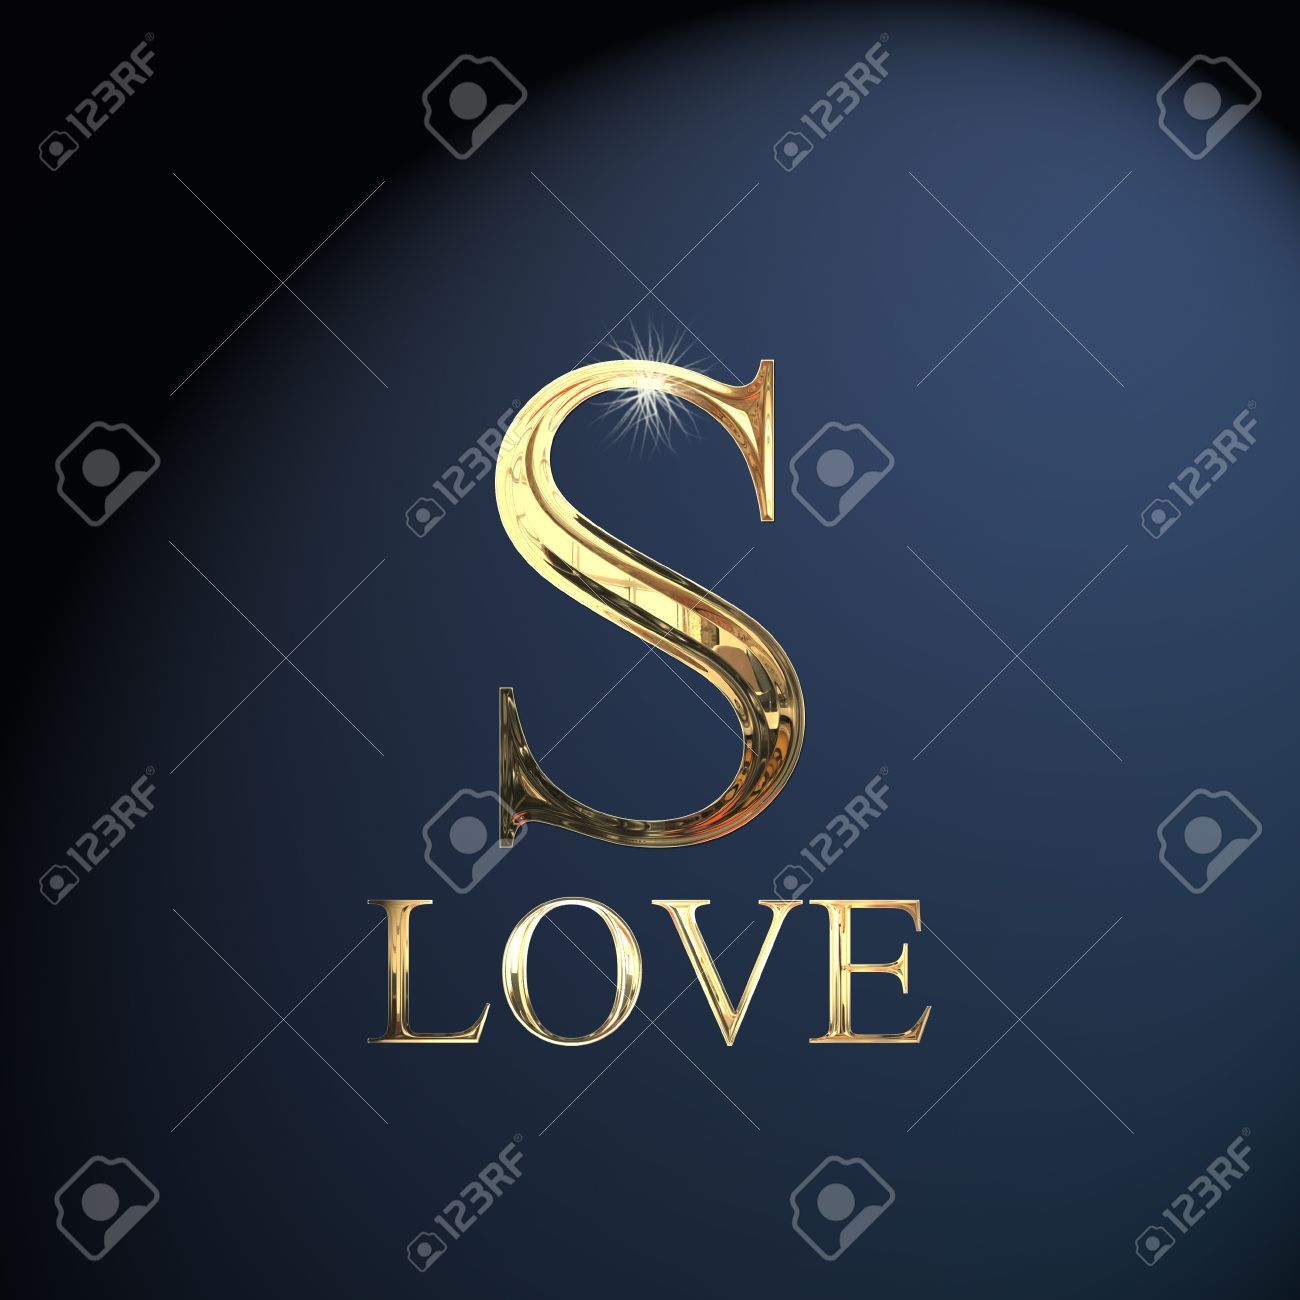 Gold Alphabet Letter S Word Love On A Blue Background S Love Images S Letter Images Love Heart Images